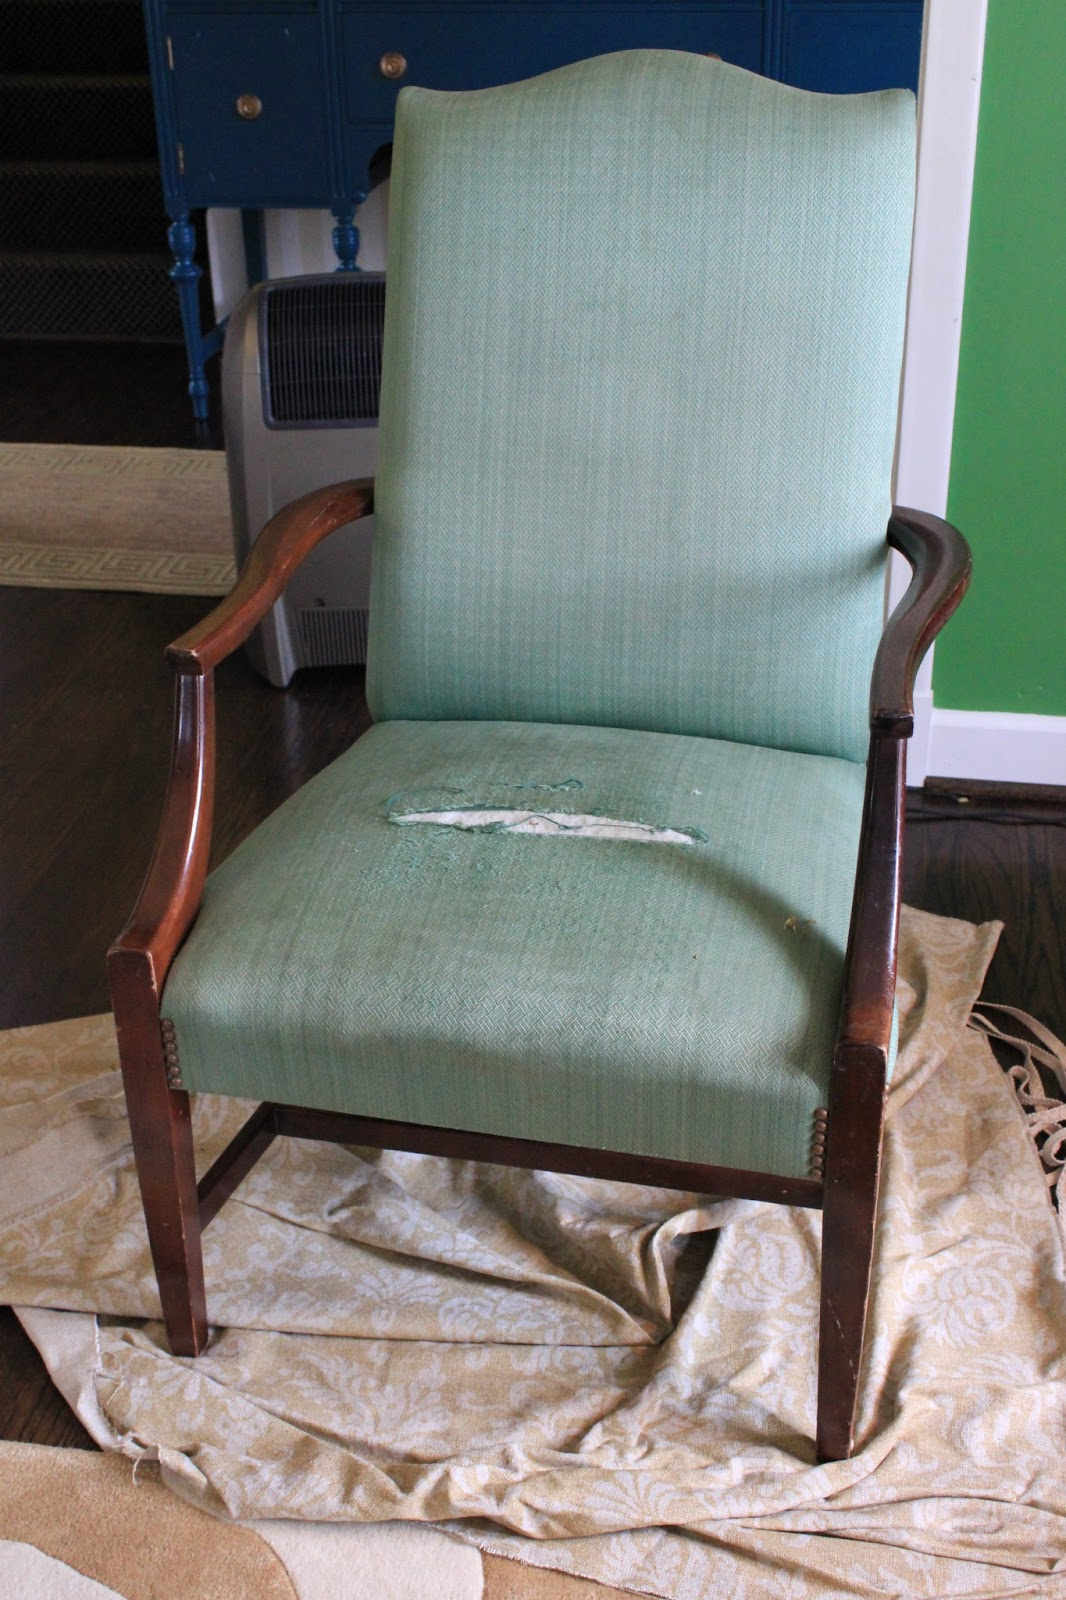 Reupholster Chair Westhampton Diy How To Reupholster A Chair